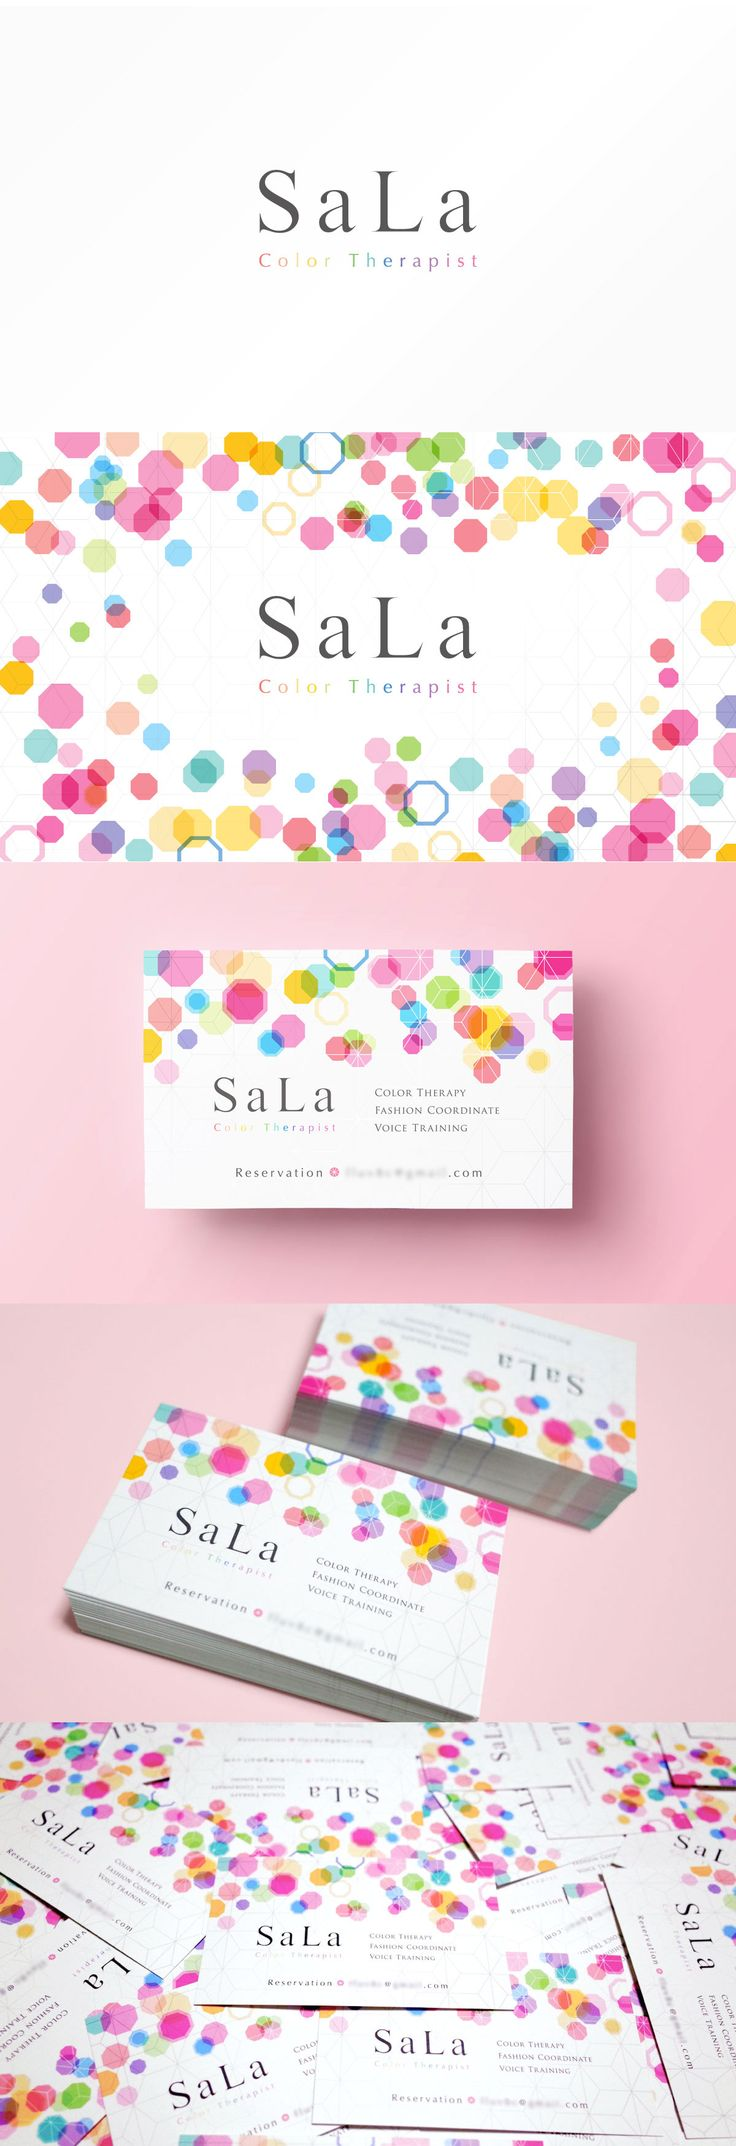 Color therapist business card design | 宝石のようなカラーセラピストの名刺デザイン。 #businesscard #card #design #color #colorful #colortherapist #gem #jewelry #名刺 #カード #デザイン